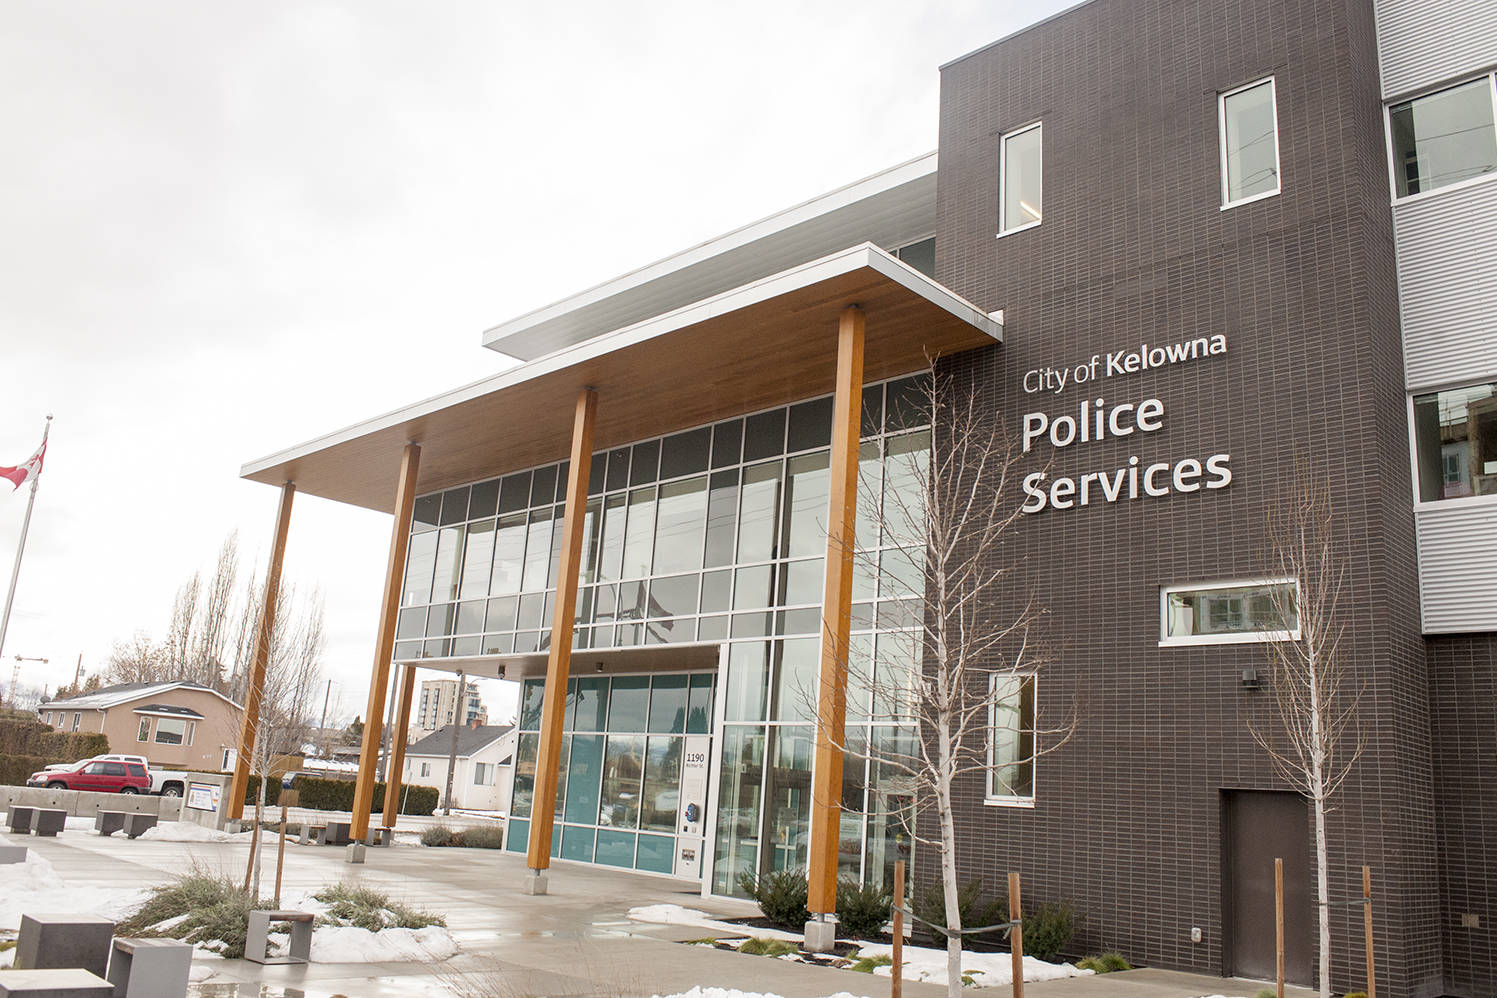 Kelowna RCMP precinct. (Michael Rodriguez - Capital News)